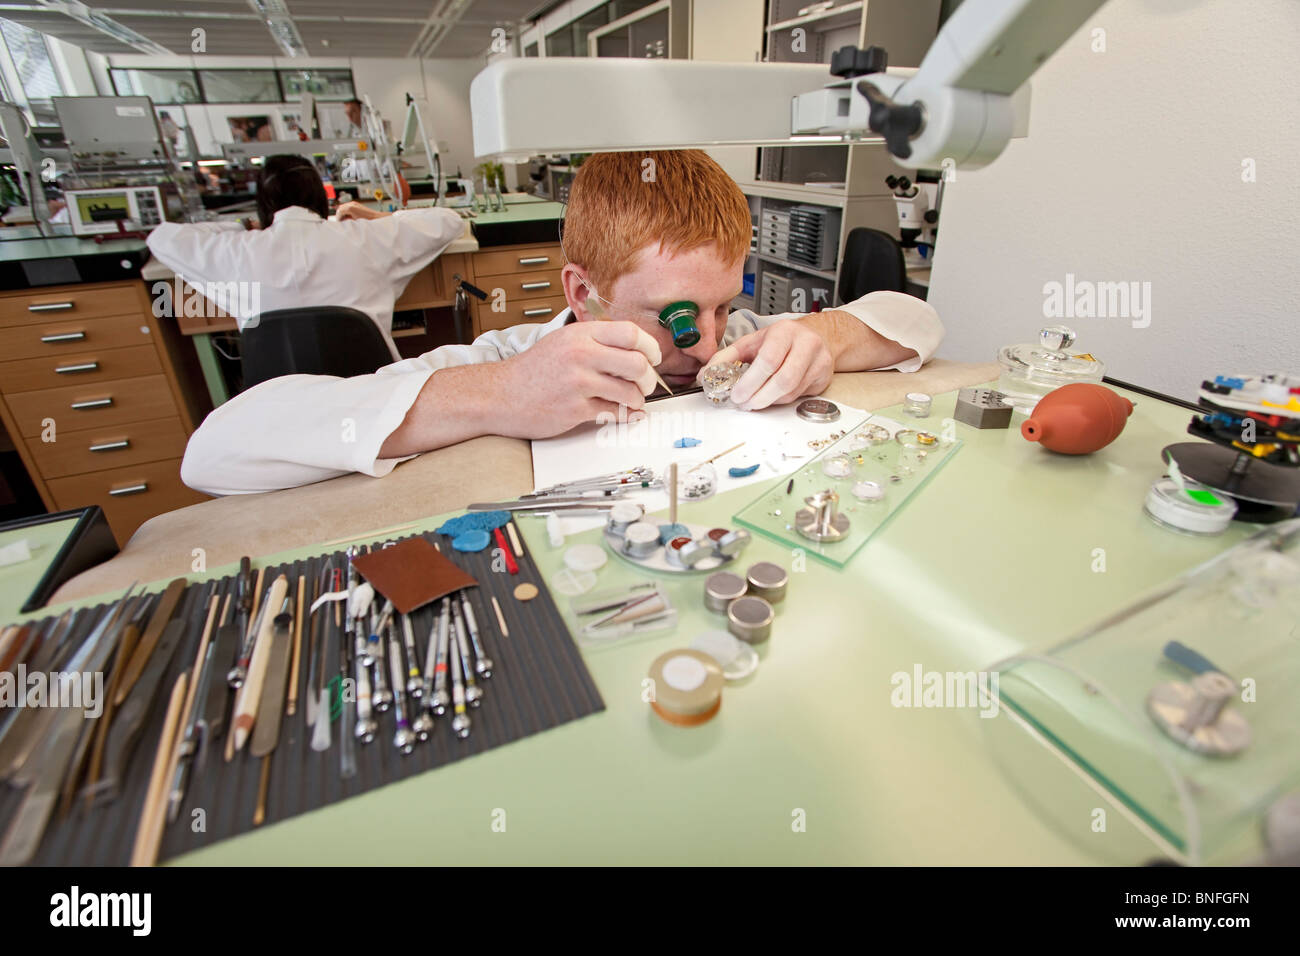 Lange und Soehne GmbH: manufacture for precious watches in Glashuette, Germany - Stock Image